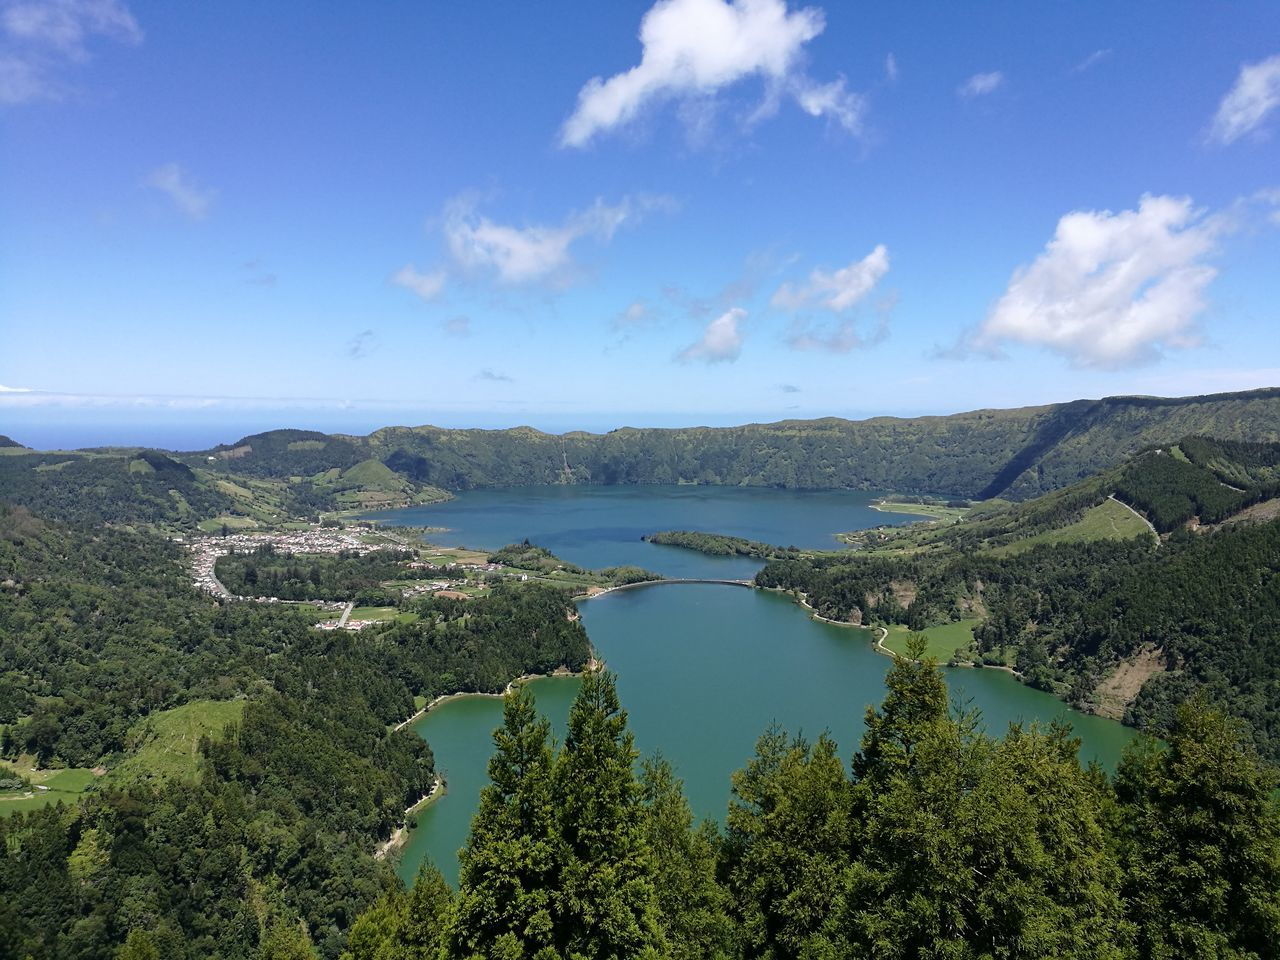 Water Lake Landscape Sky Outdoors Scenics Beauty In Nature Nature View From Above Aerial Photography Aerial View Mountain Forest Rural Scene Azores Travel Destinations Horizon Over Water Clear Sky Tranquility High Angle View Travel Panoramic Photography Setecidades Lagoon The Great Outdoors - 2017 EyeEm Awards